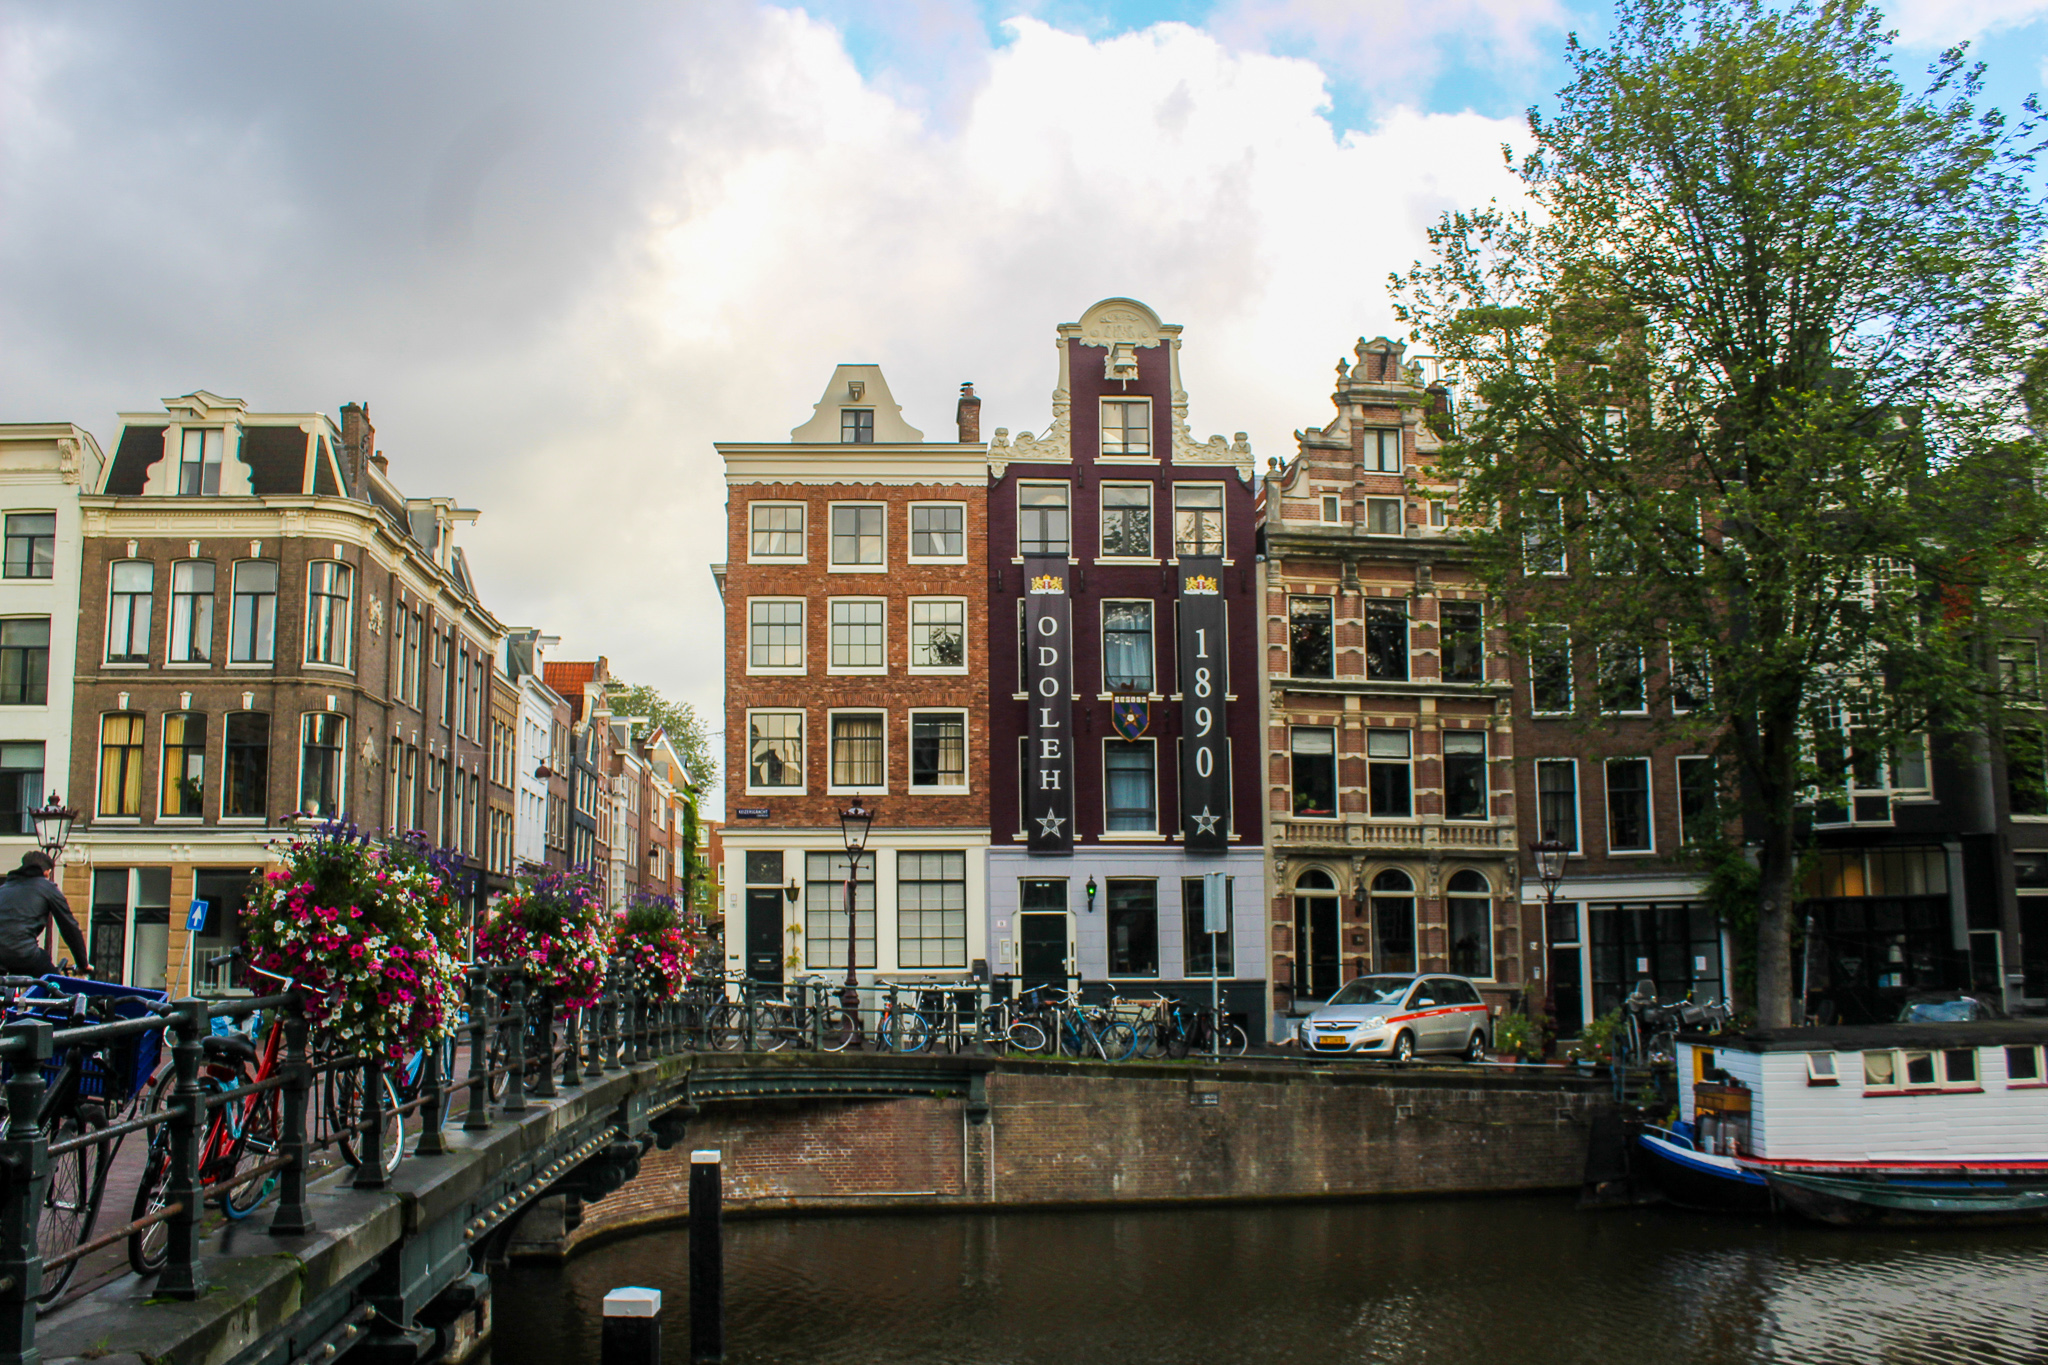 backpacking europe 2 weeks: don't skip over amsterdam